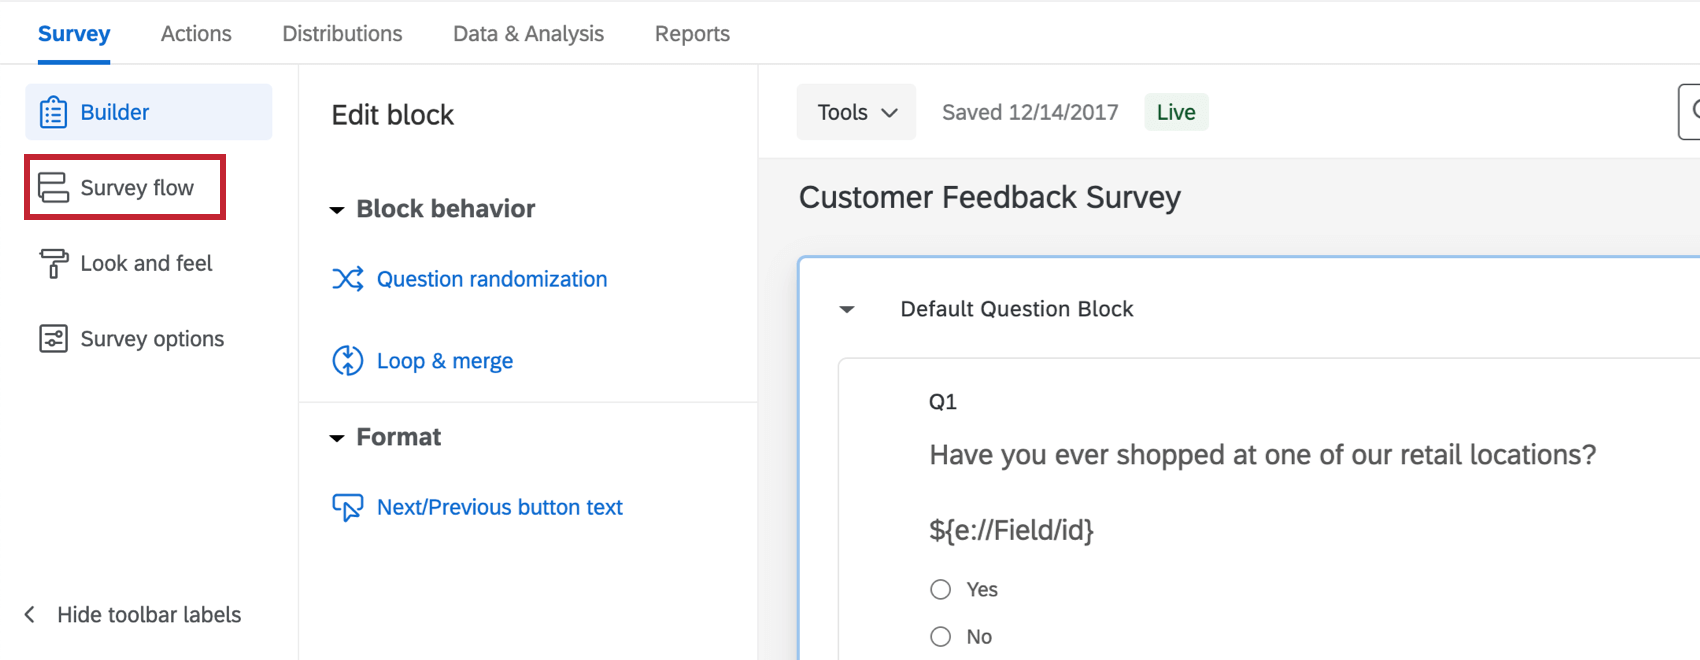 Toolbar expanded to left - survey flow button is highlighted